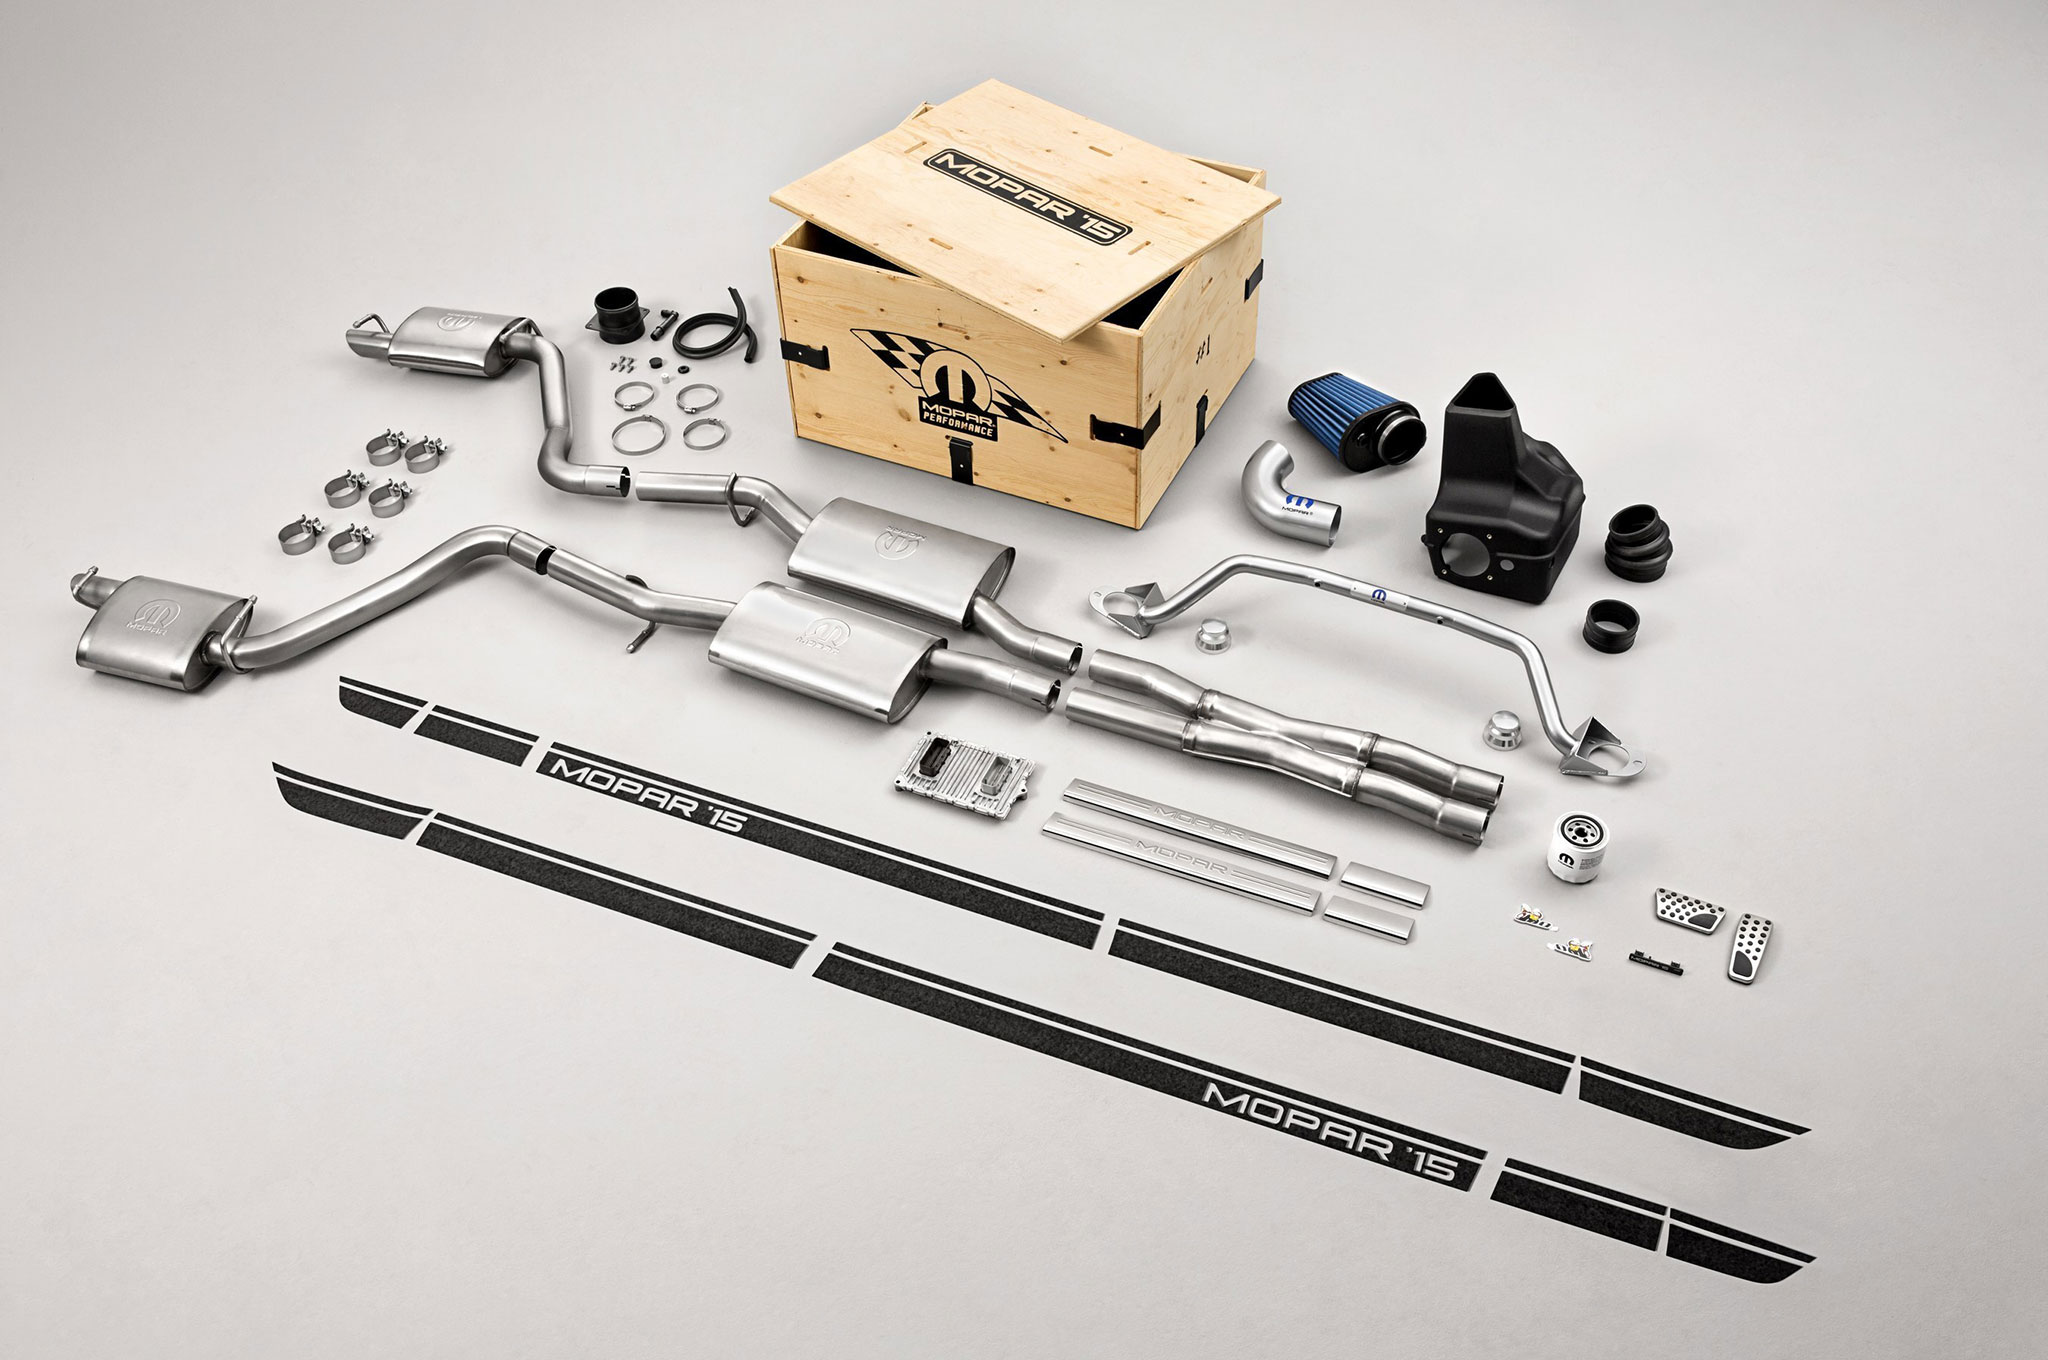 Mopar Launches Limited-Edition Performance Kit for Dodge Charger R/T